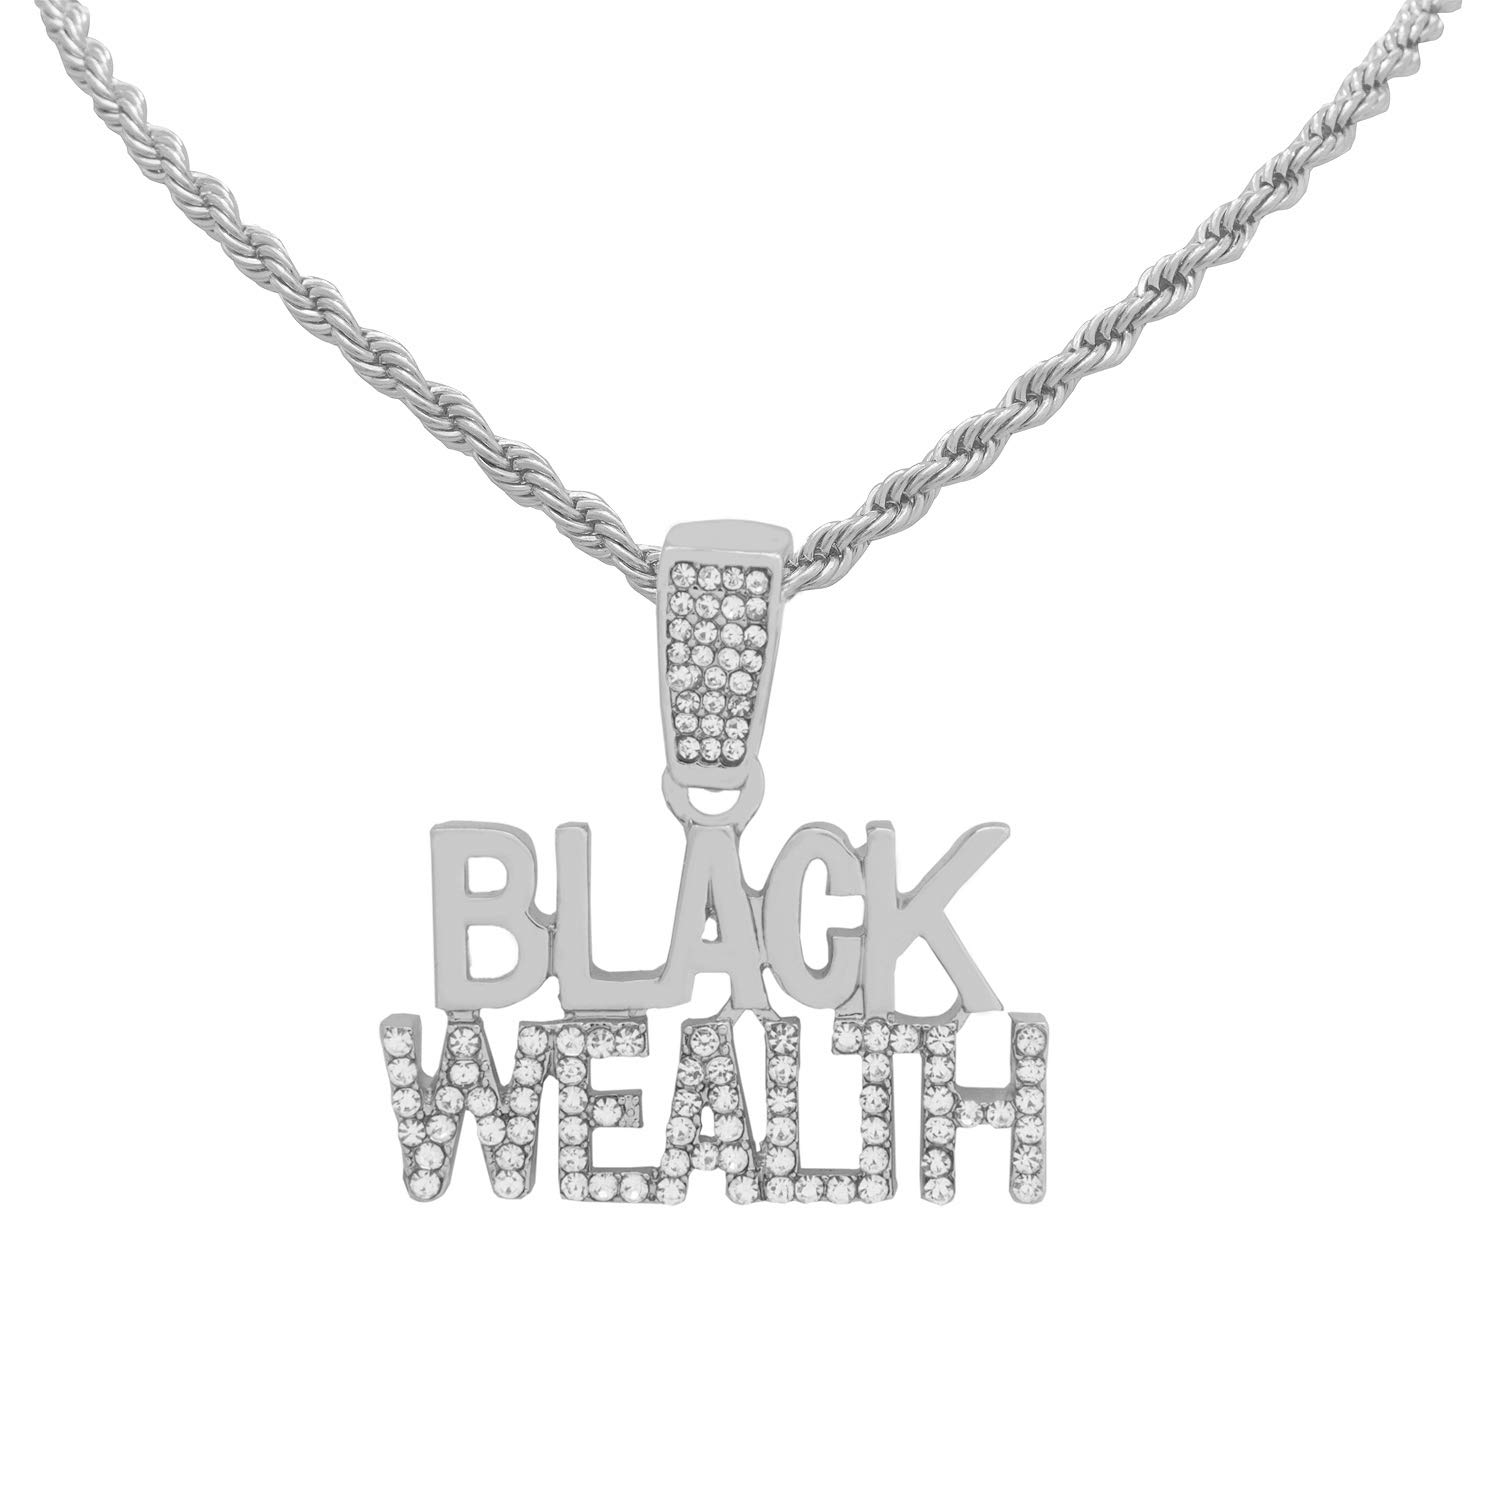 White Gold-Tone Hip Hop Bling Iced Out Black Wealth Pendant with 18 Tennis Chain and 24 Rope Chain